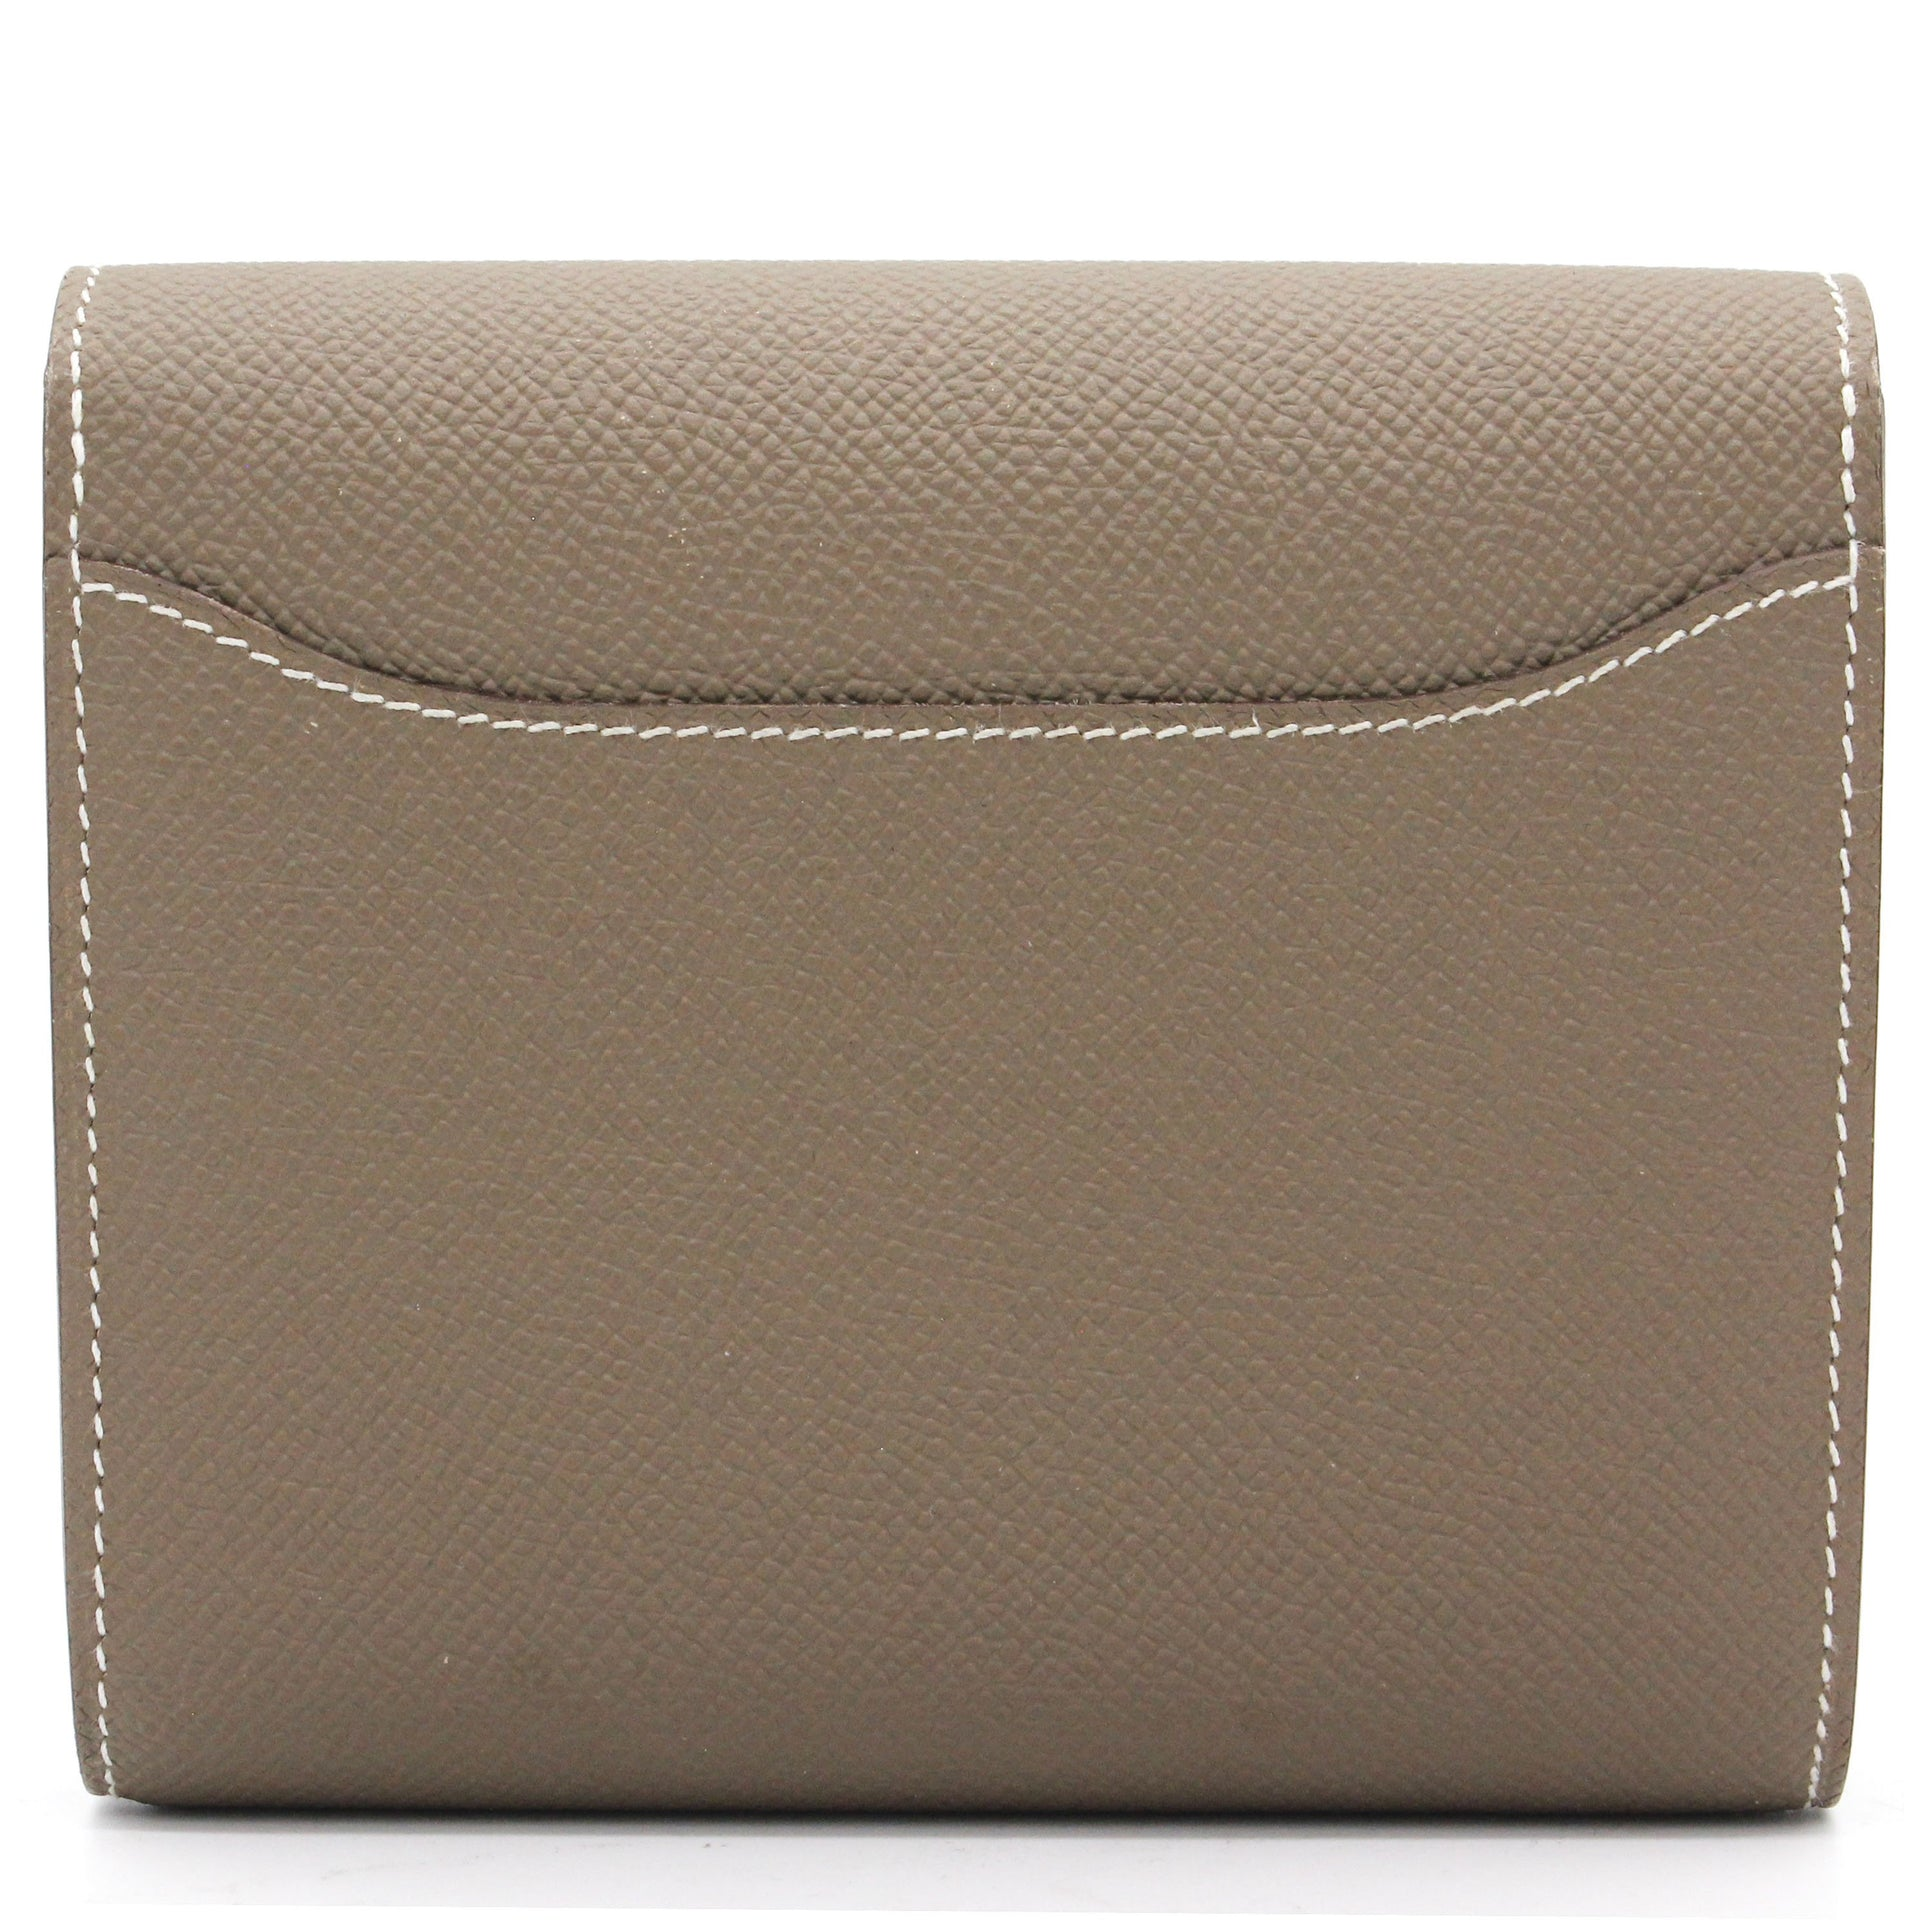 Epsom Leather Gold Constance Wallet Etoupe